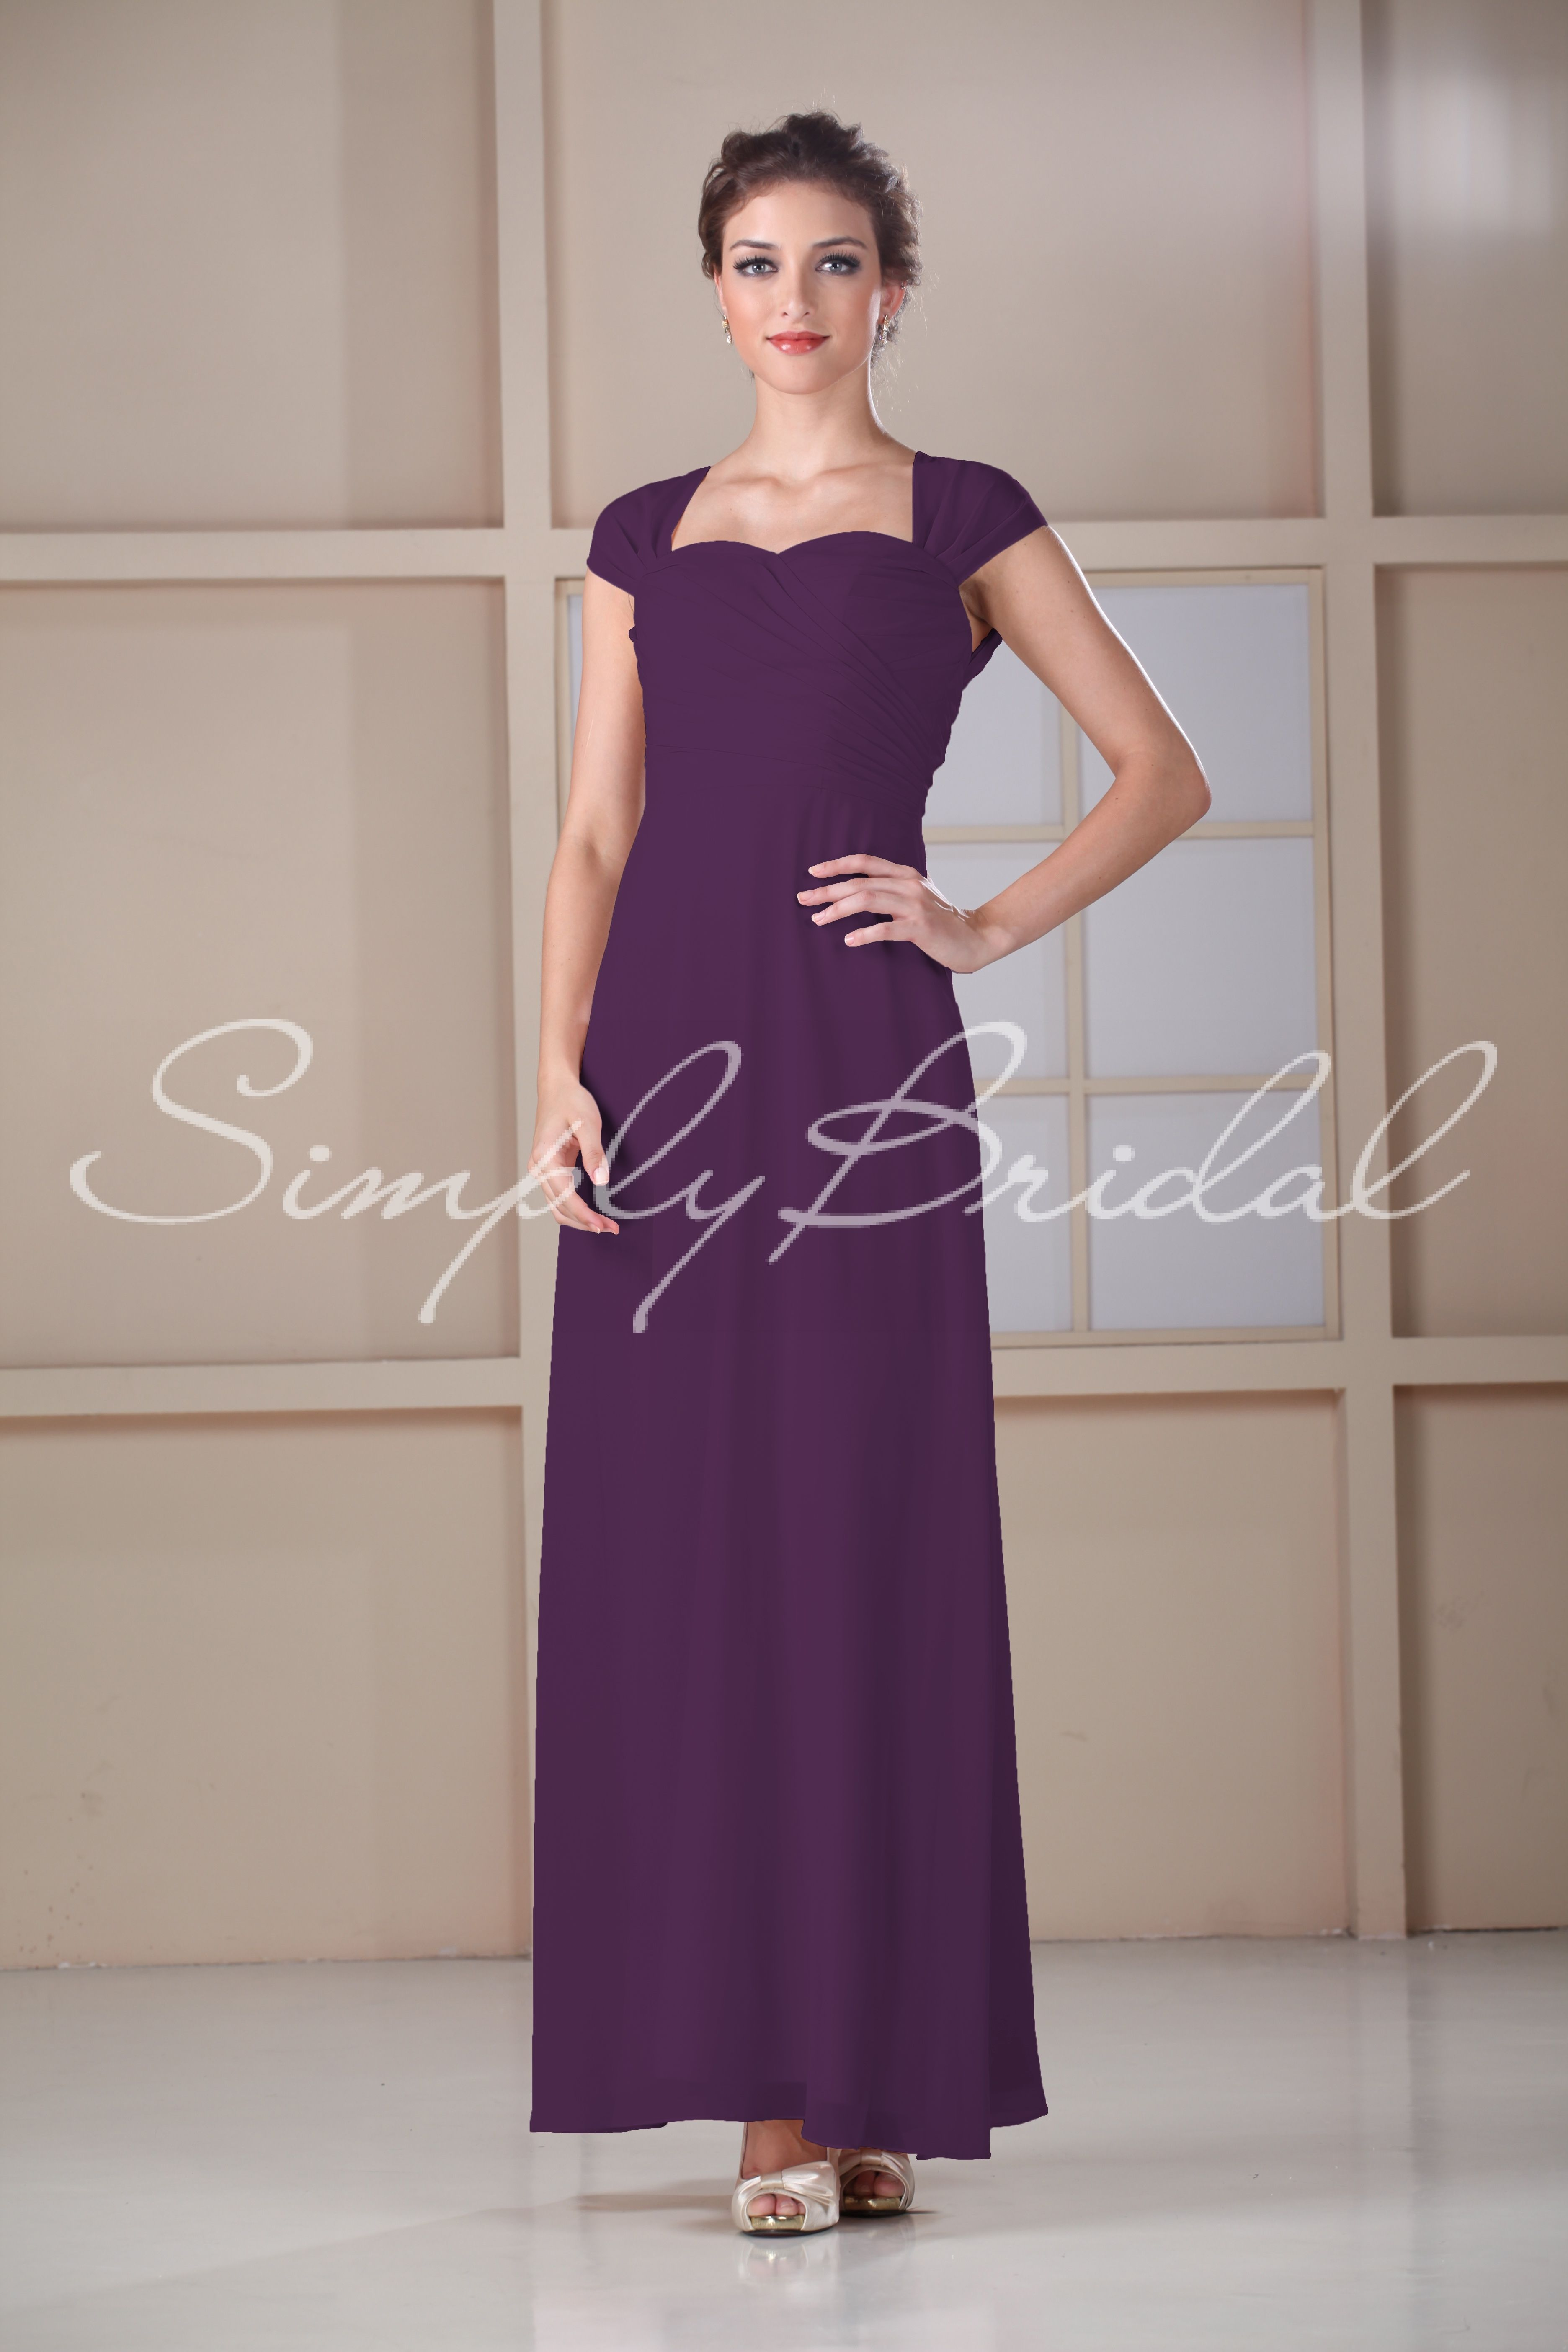 85117 - Sweetheart Floor-length Dress with Capsleeves